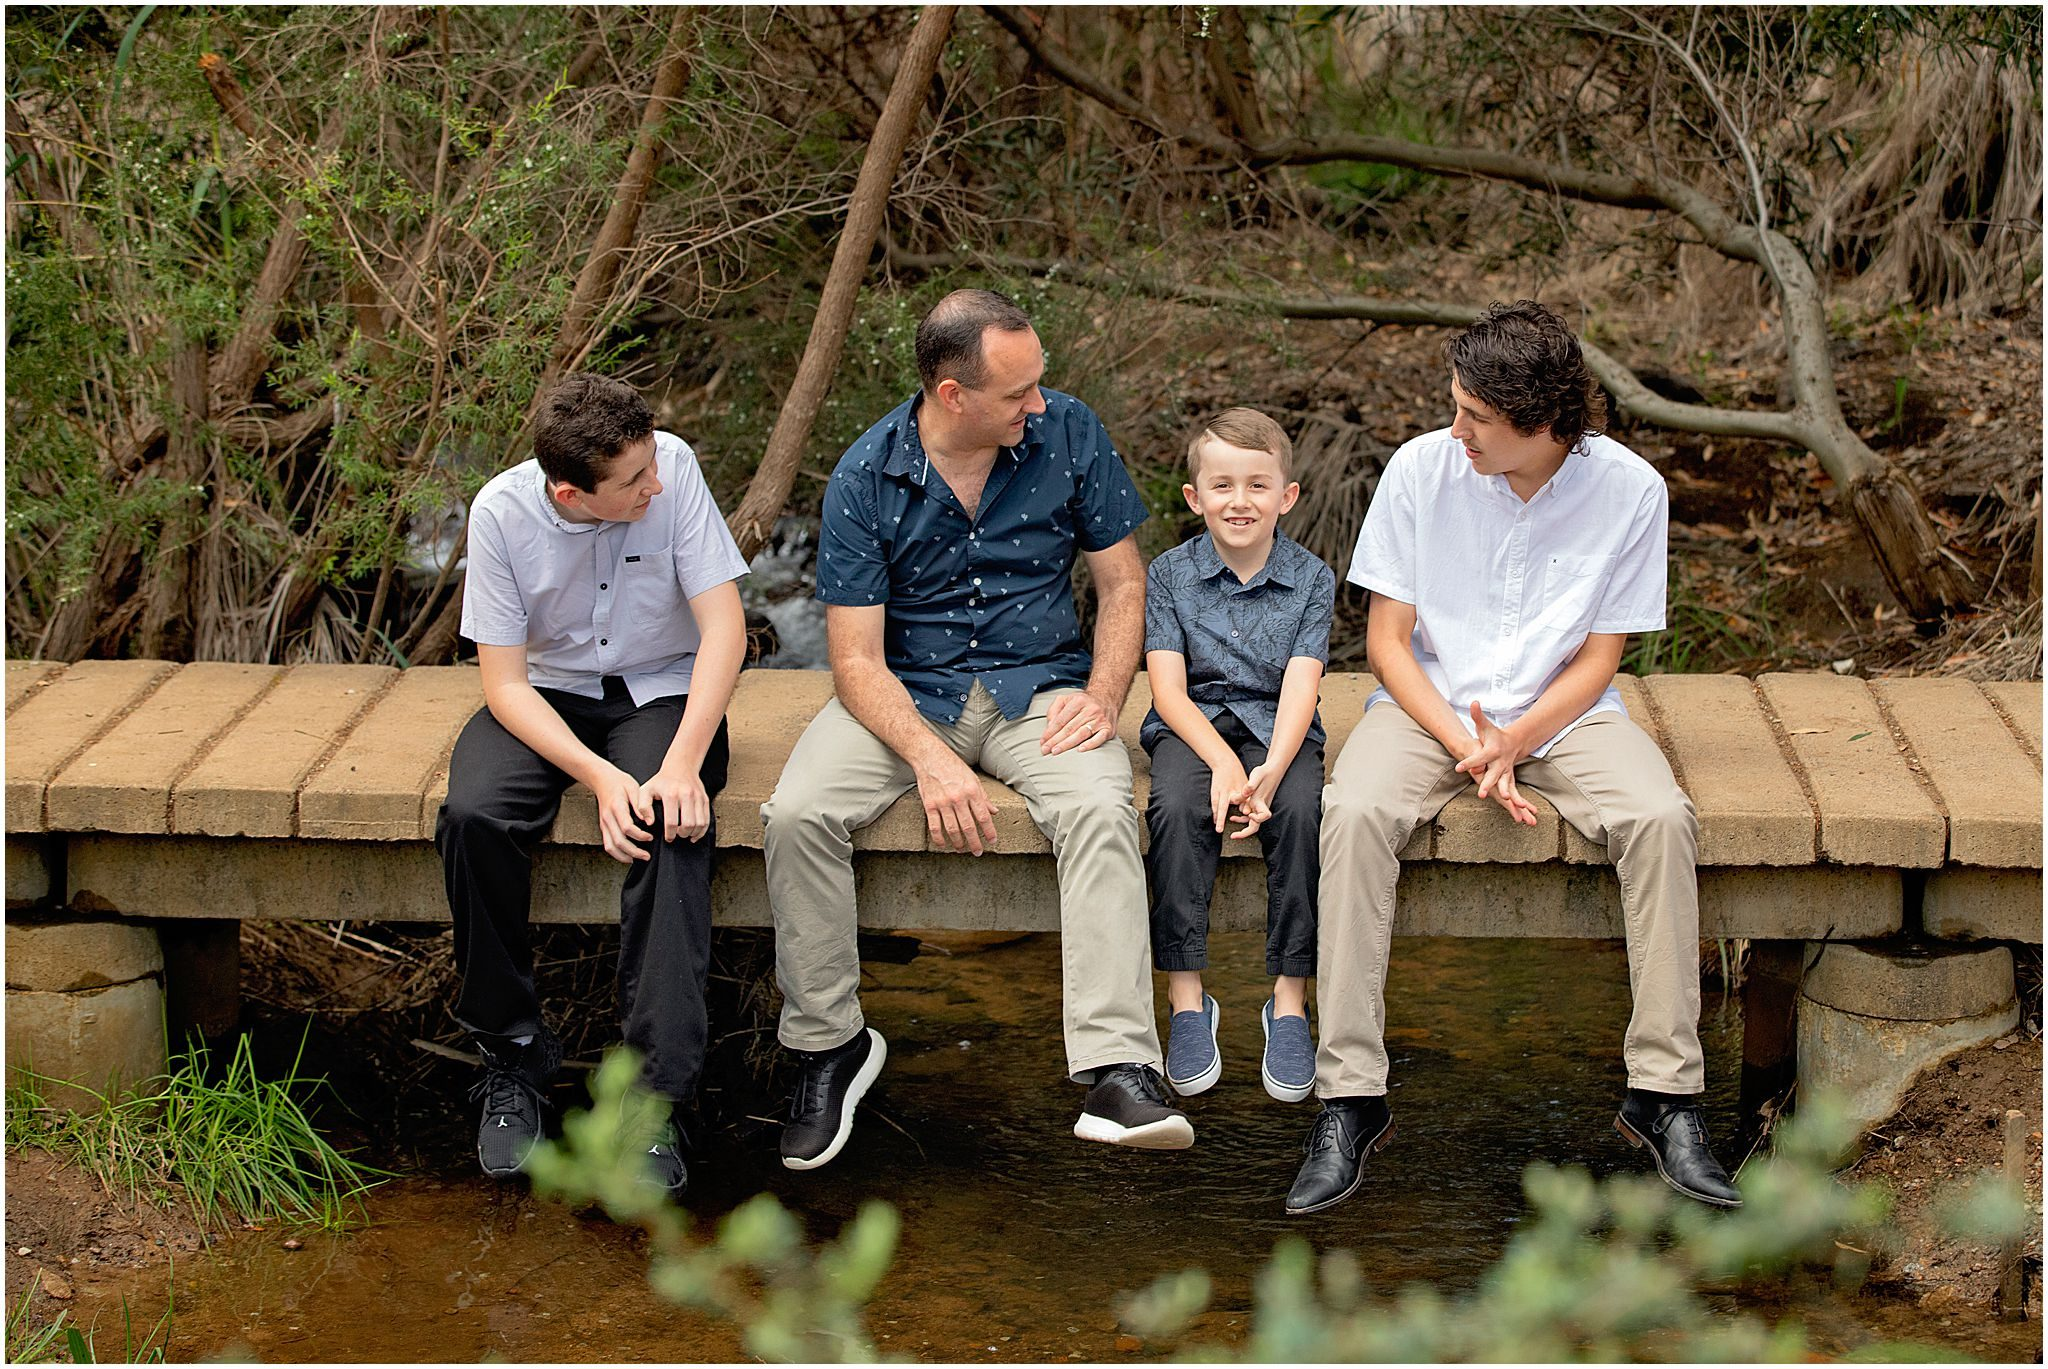 Perth Family Photography at Lesmurdie Falls.